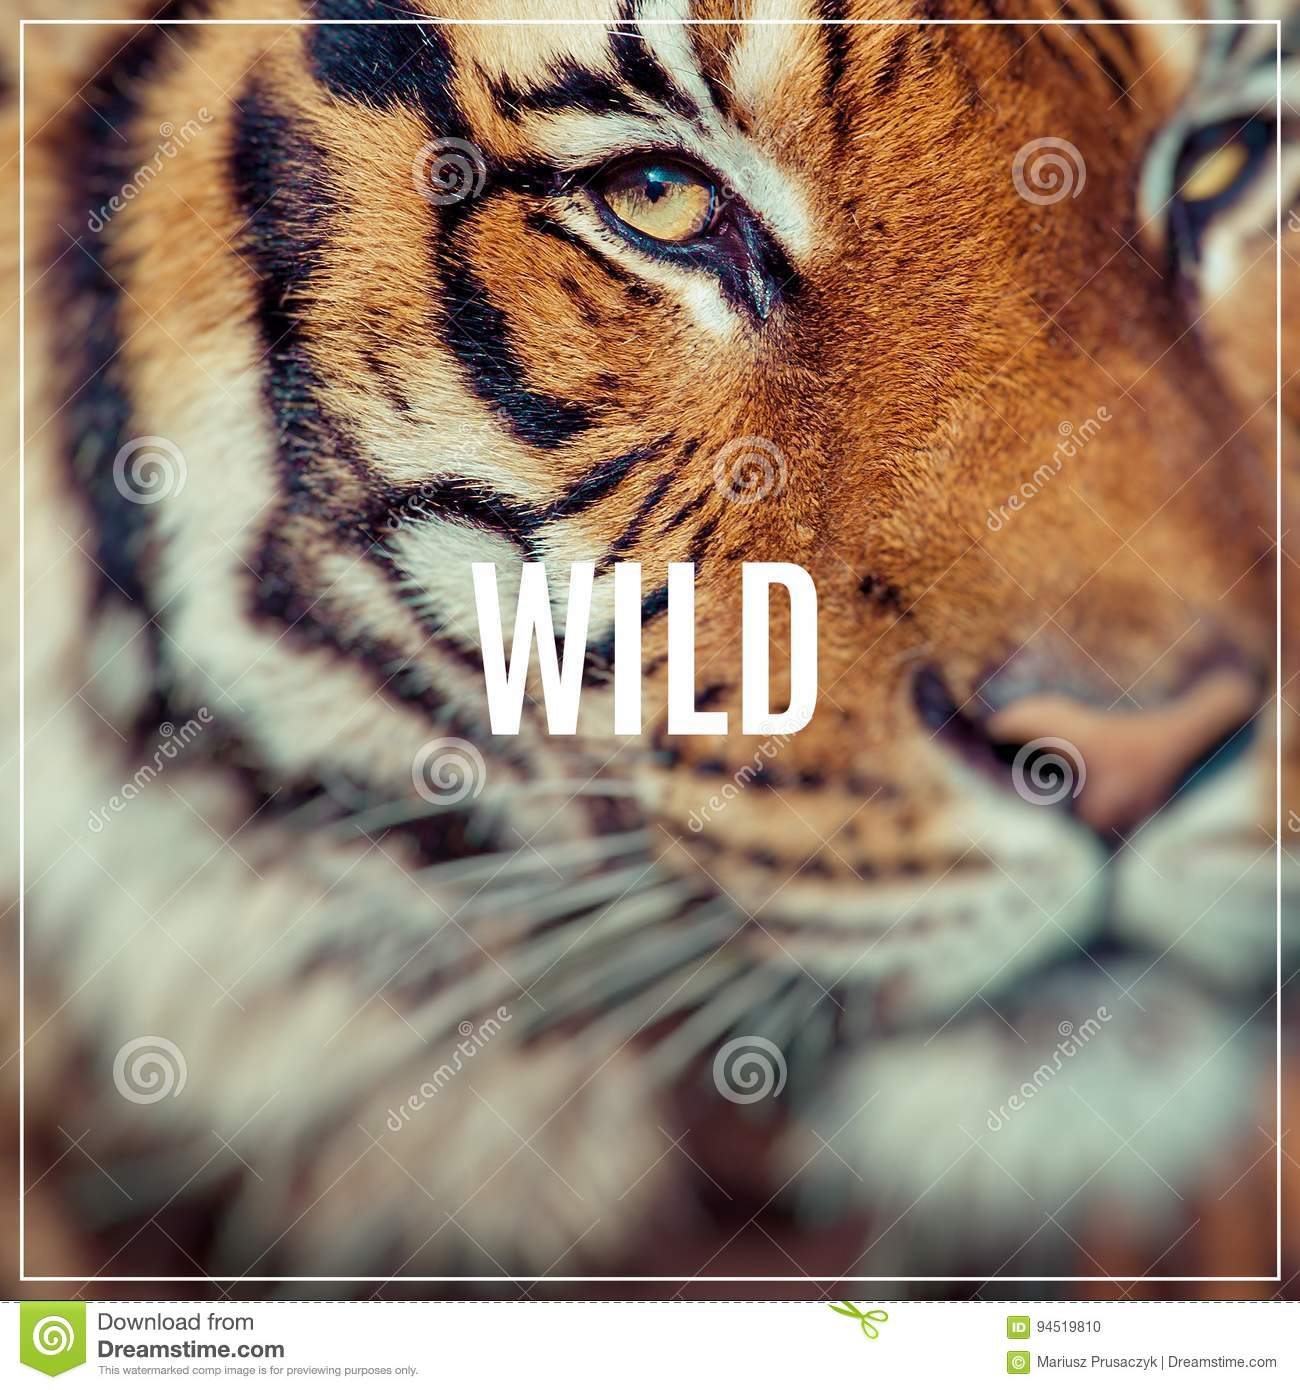 word wild close up of a tigers face selective focus stock photo